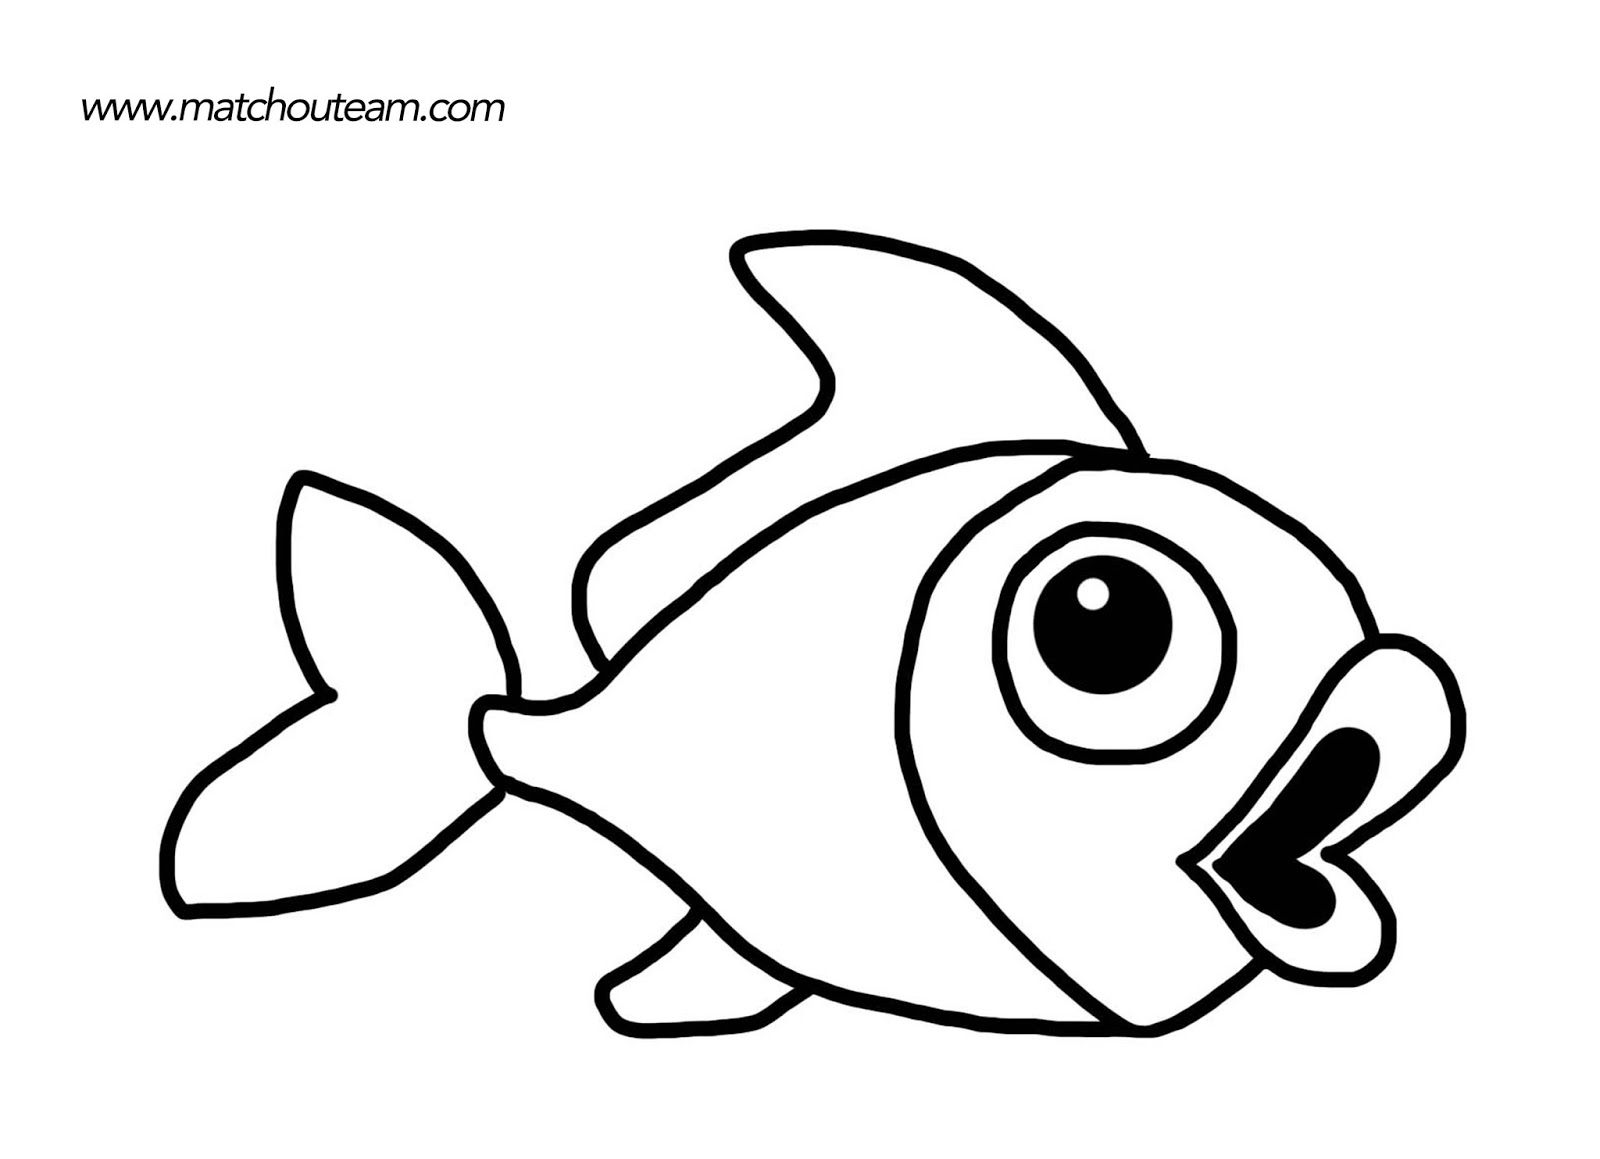 Dessin A Colorier Perroquet Coloriage à Dessiner Poisson Perroquet